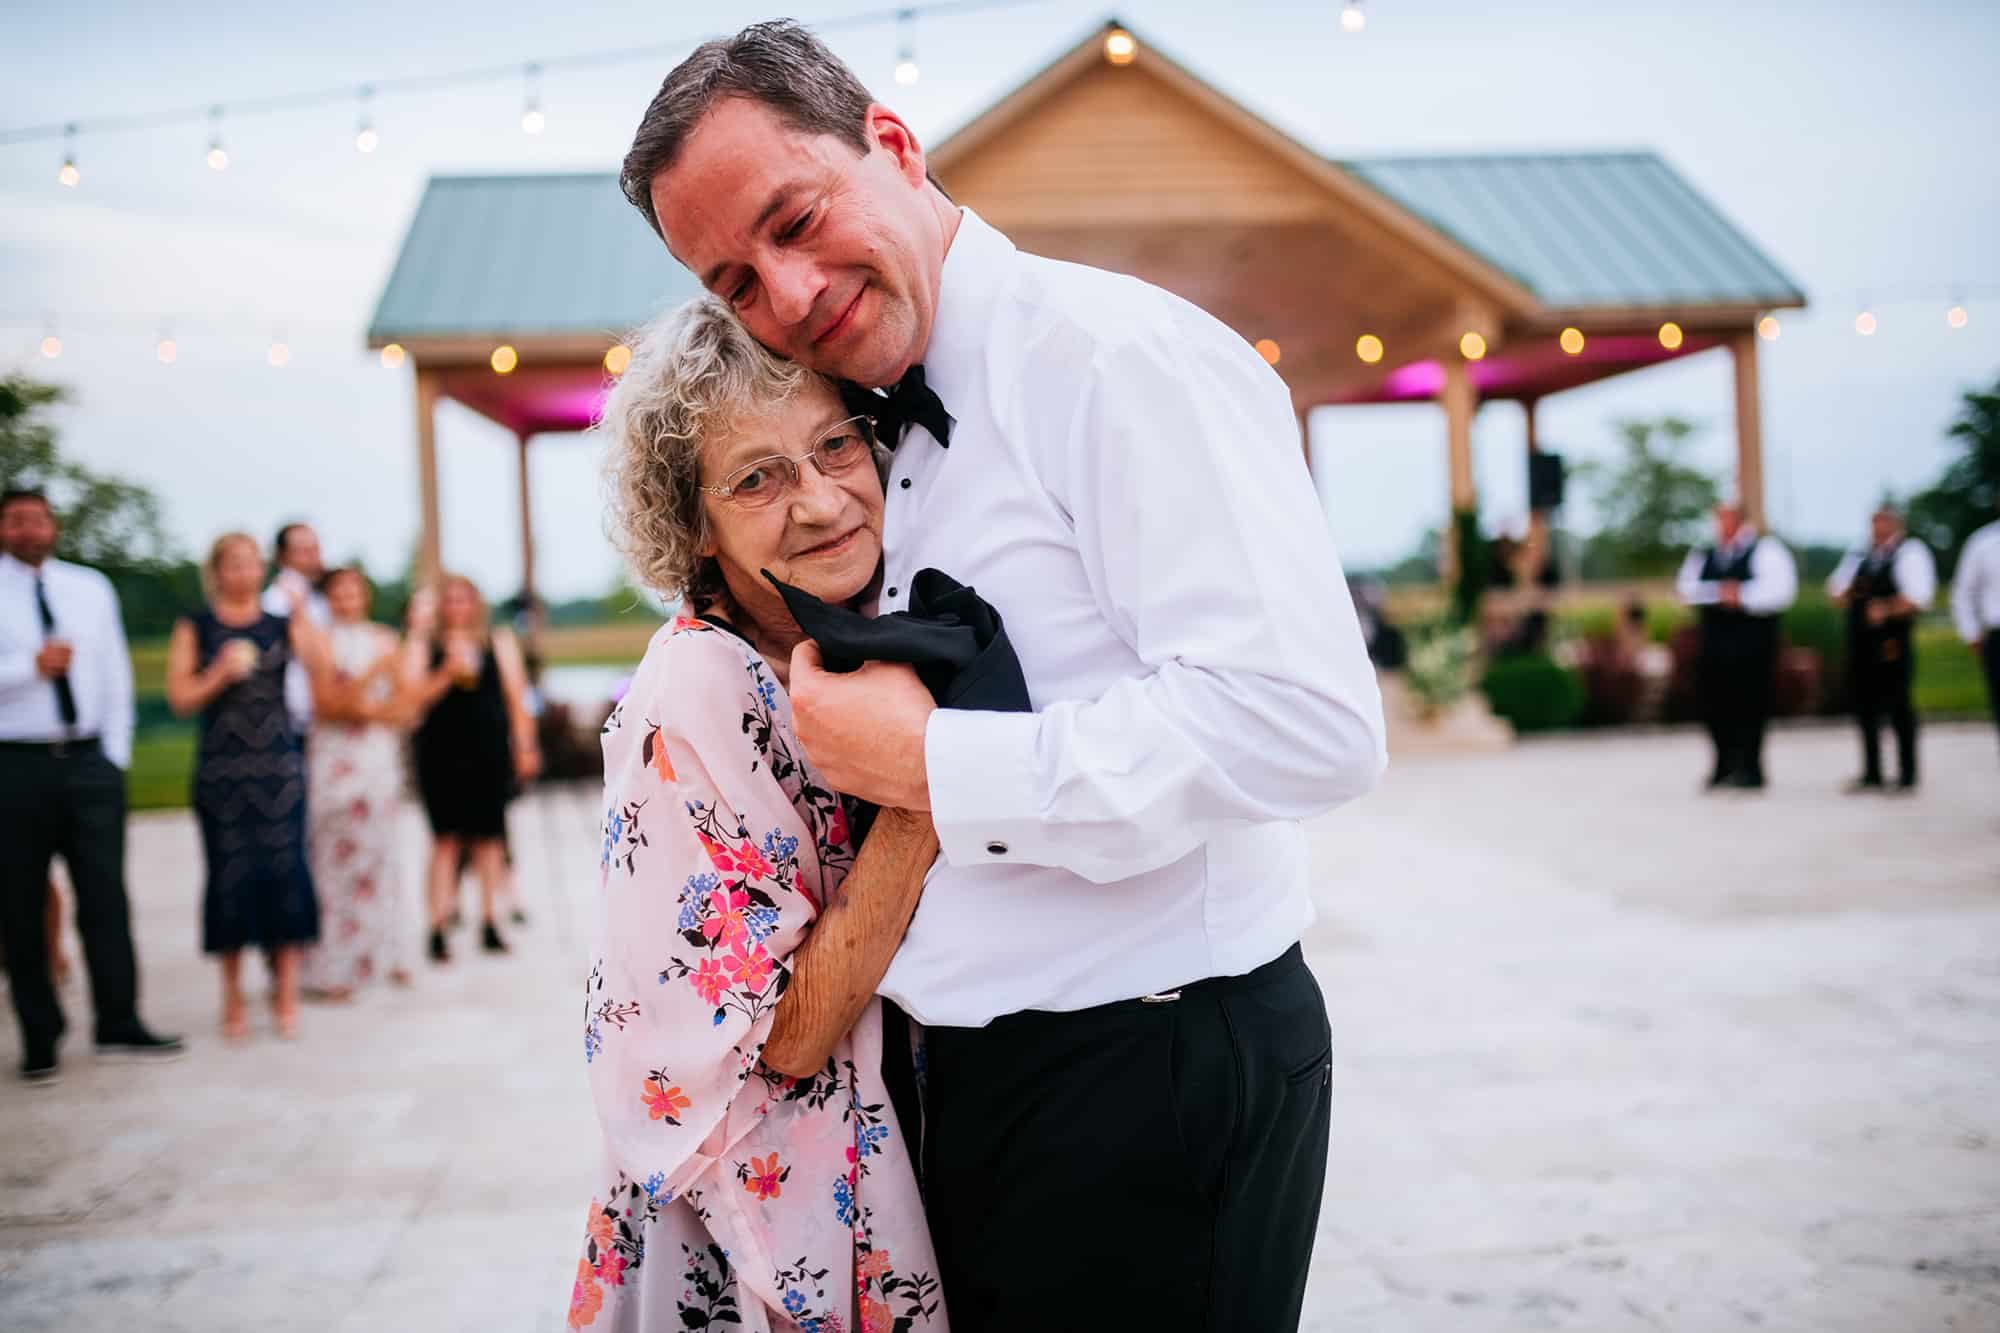 dancing with grandma